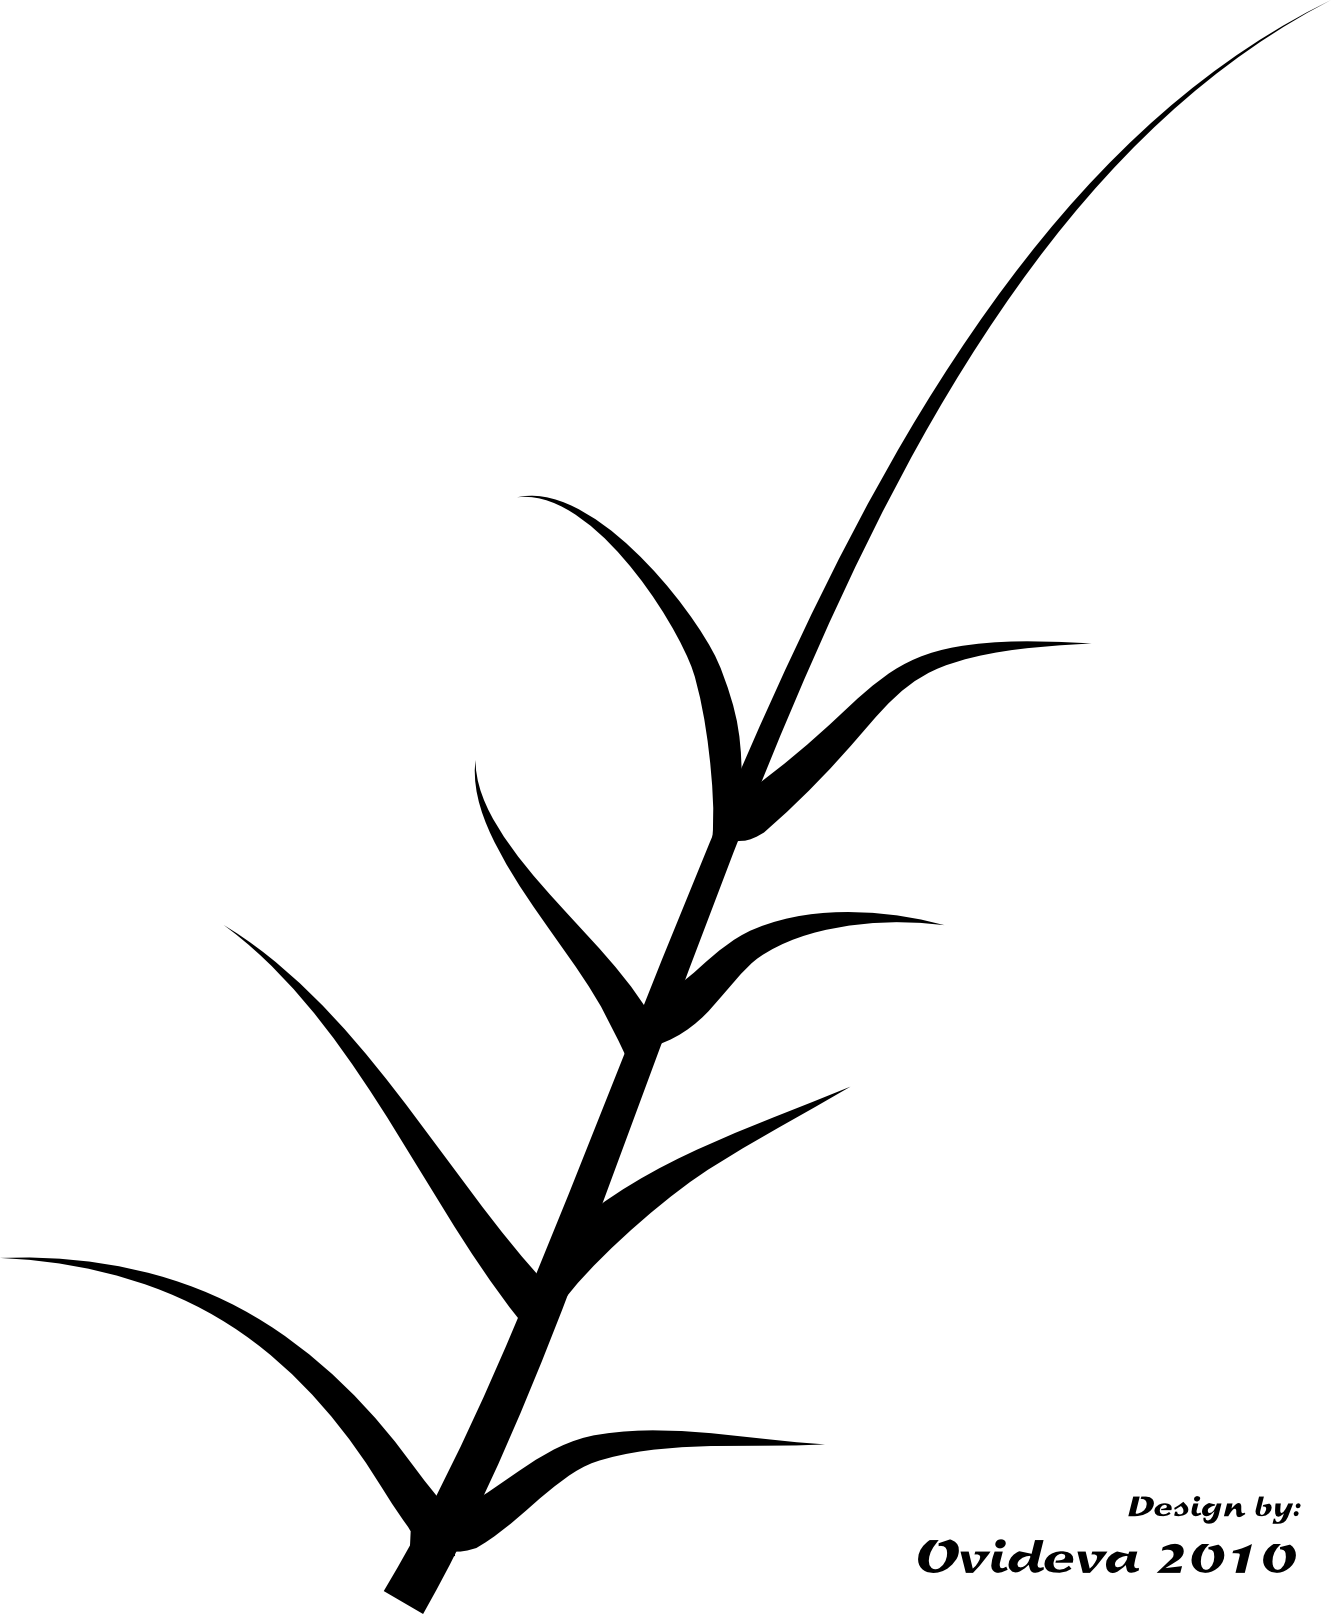 Free Black And White Plant, Download Free Clip Art, Free